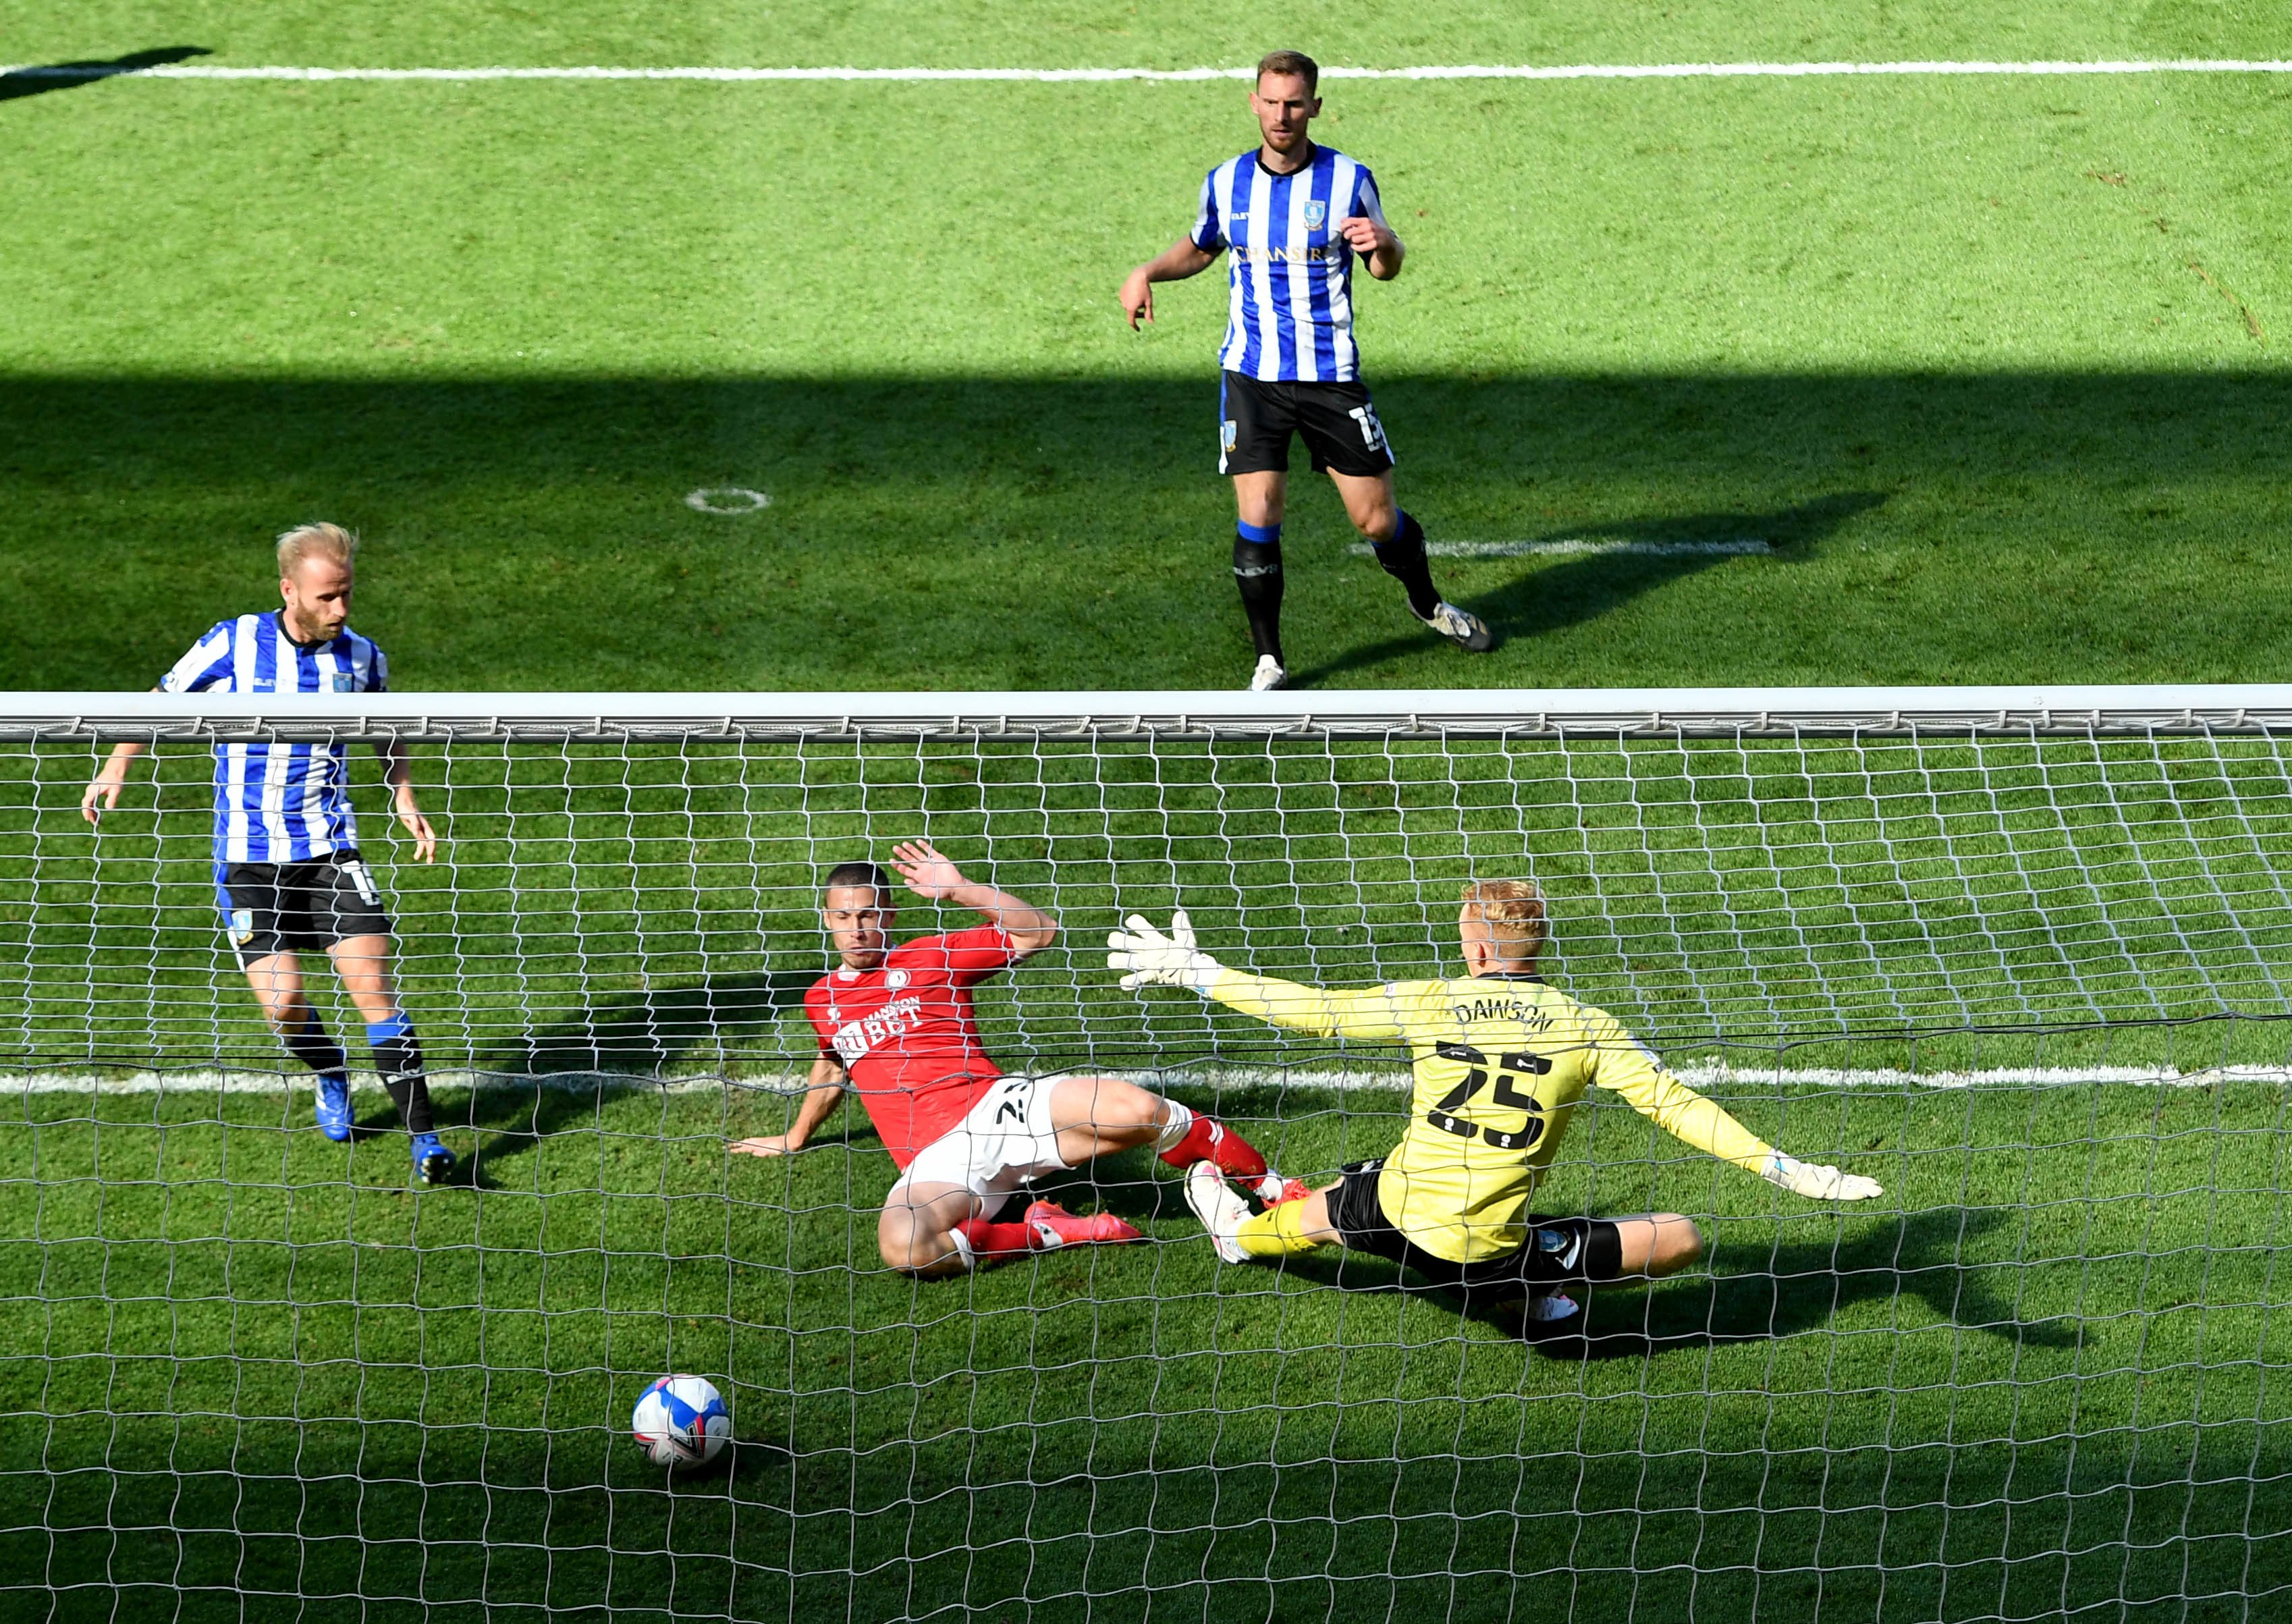 Bristol City share top spot in Championship after third straight win